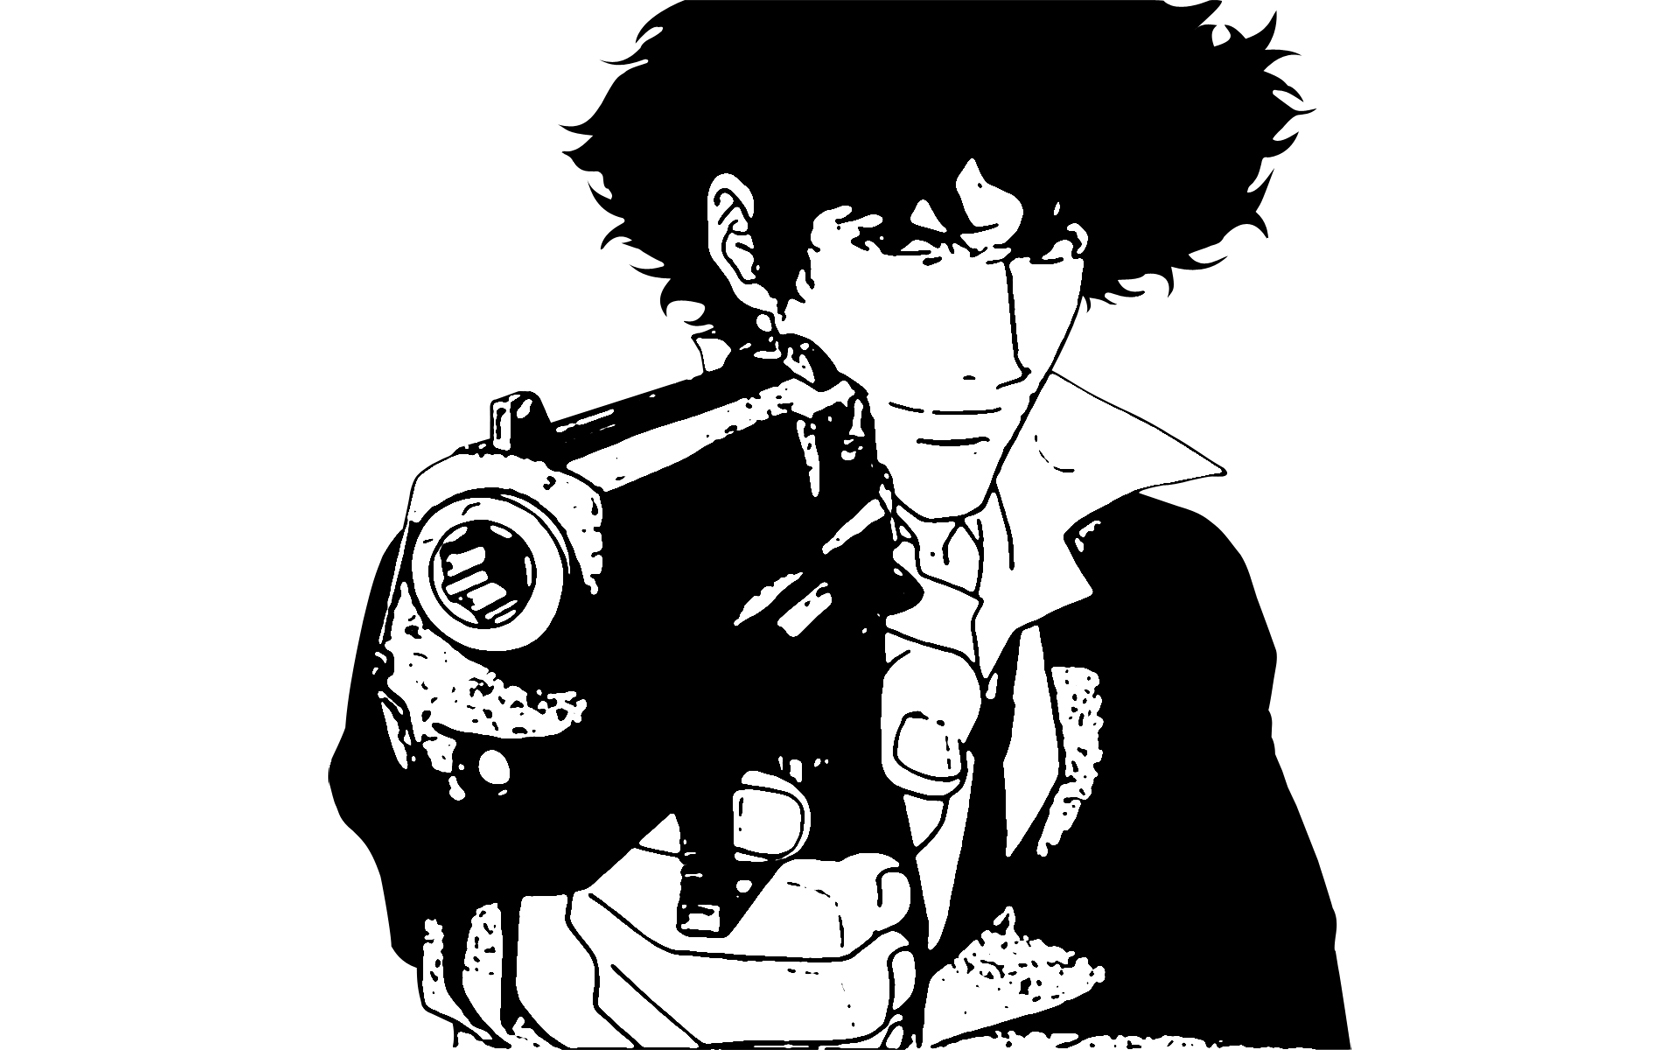 cowboy bebop spike spiegel anime HD Wallpaper   Anime Manga 902303 1680x1050